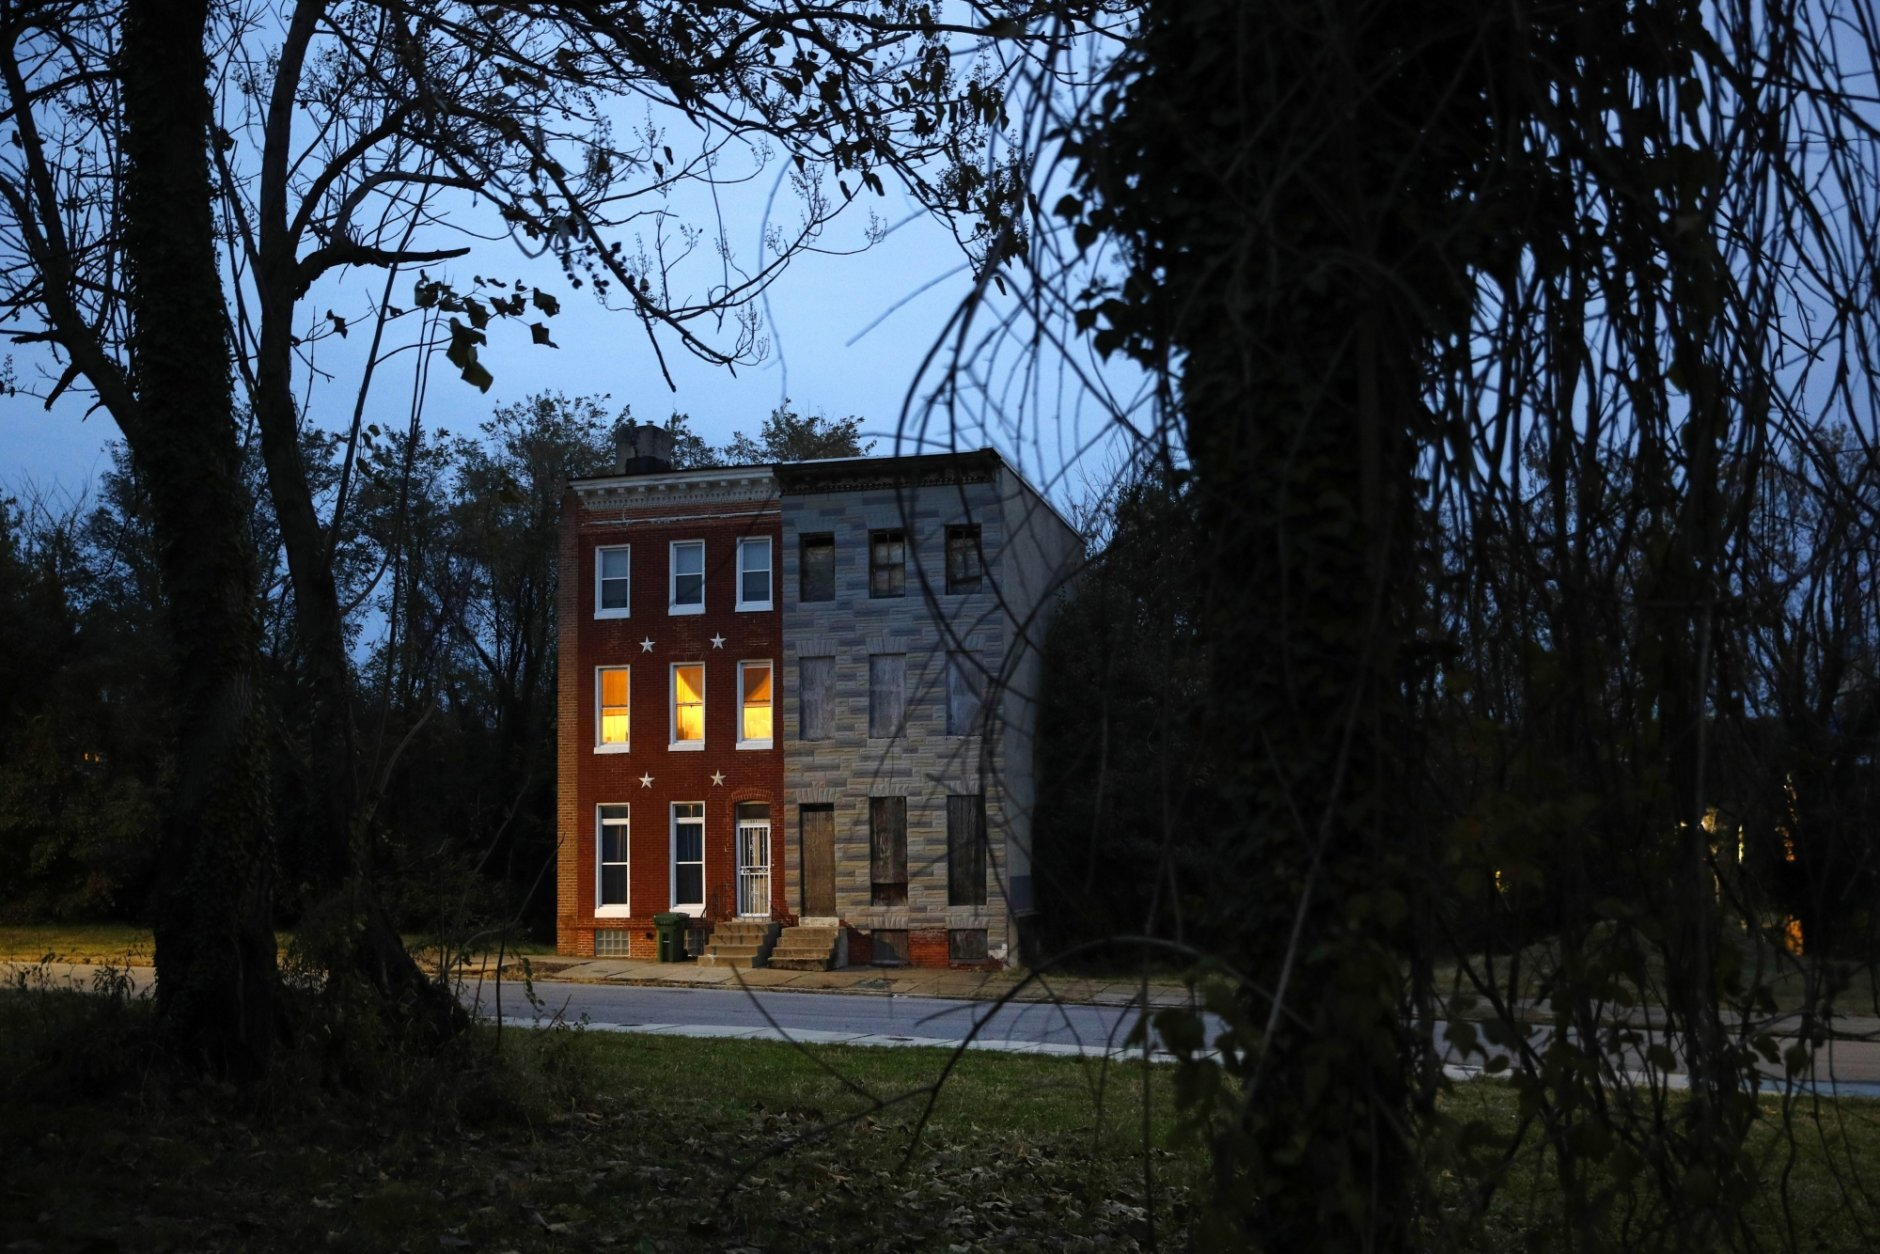 In this Nov. 13, 2018 photo, a pair of rowhomes, one occupied, the other boarded up, stand surrounded by vacant lots at dusk in Baltimore. At a time when rival cities that have grappled with issues of urban decay are gaining residents, Baltimore's decades-long disappearing act is only continuing. It has led all U.S. cities in population loss for the last two years running. (AP Photo/Patrick Semansky)